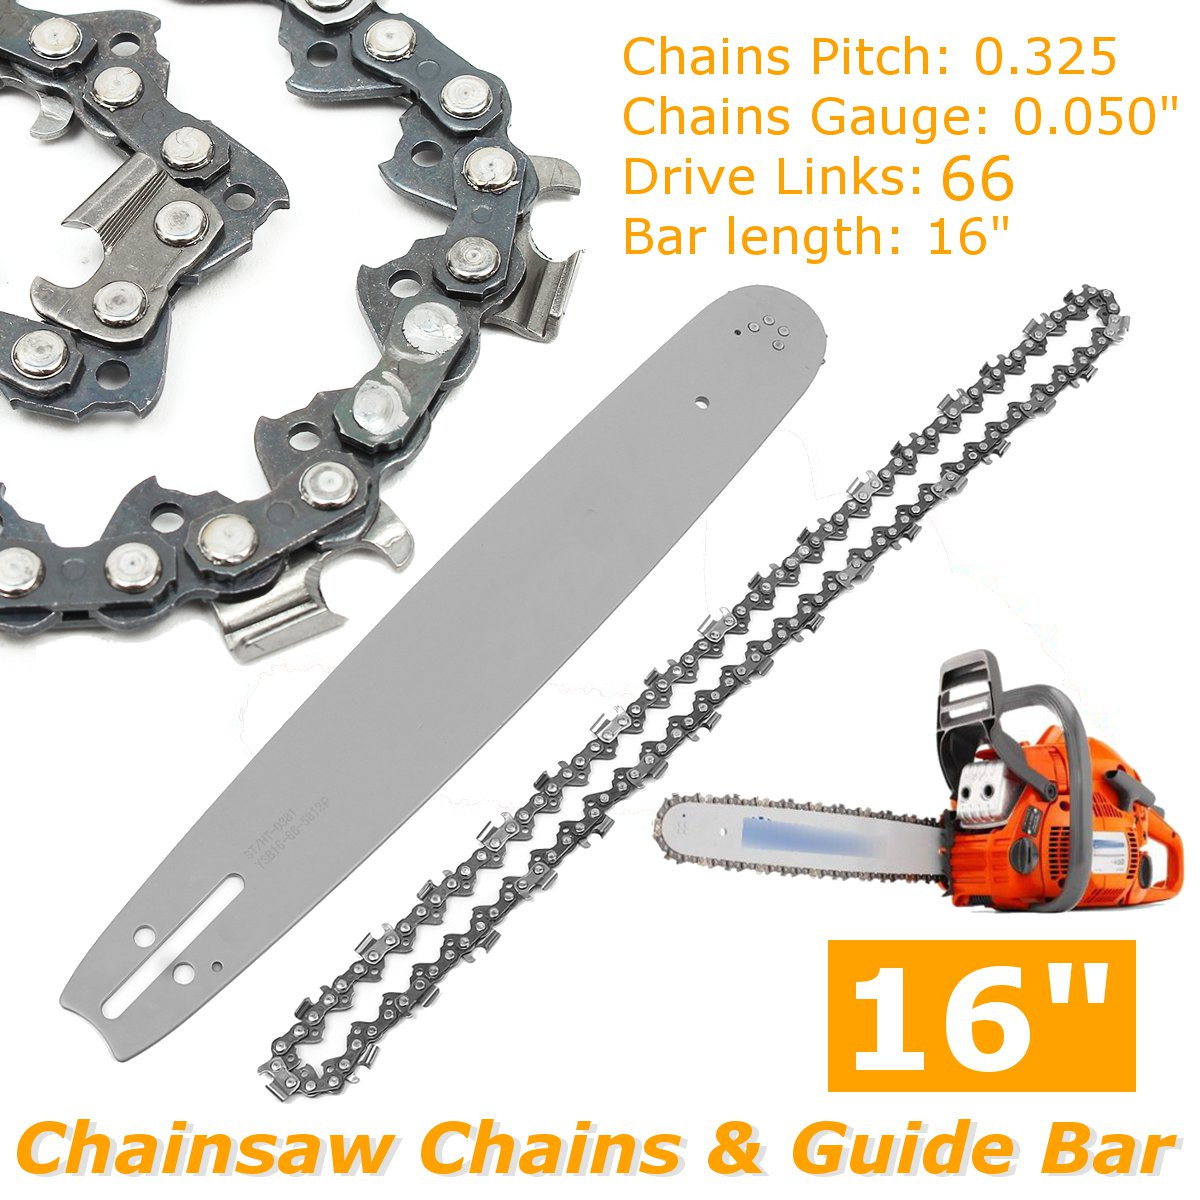 2Pcs <font><b>16</b></font> <font><b>inch</b></font> Guide Bar + <font><b>Chainsaw</b></font> <font><b>Chains</b></font> Semi Chisel <font><b>Chain</b></font> For Husqvarna 36 41 50 51 55 346XP 450 455 460 POULAN 66DL image